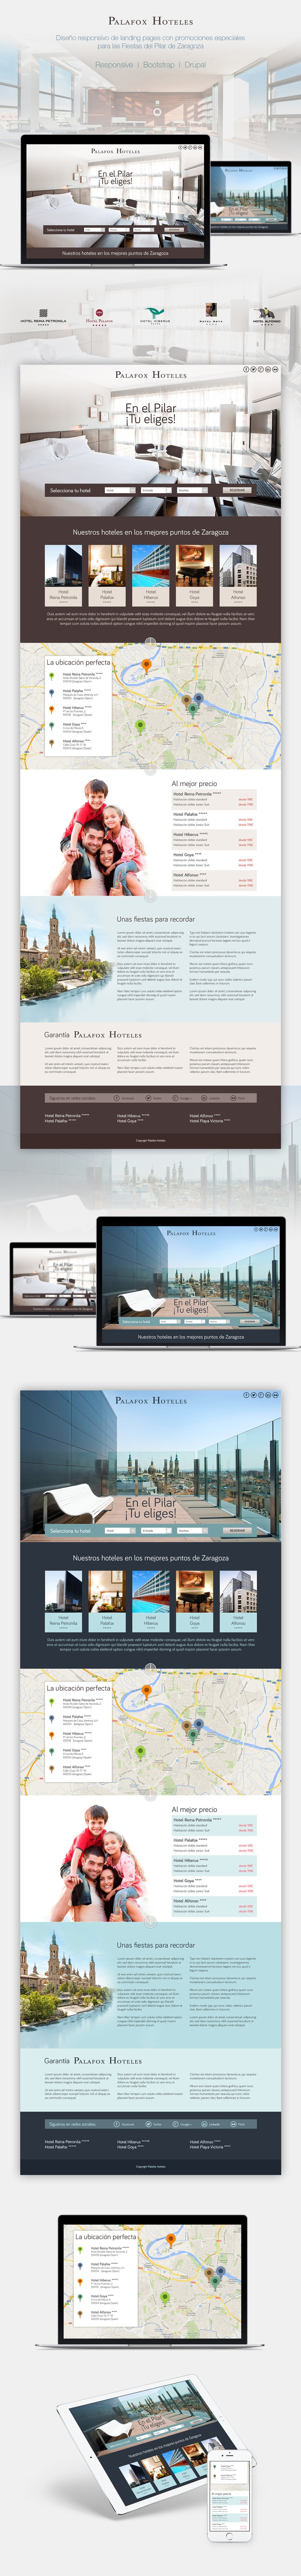 Palafox Hoteles | Landing Pages -1